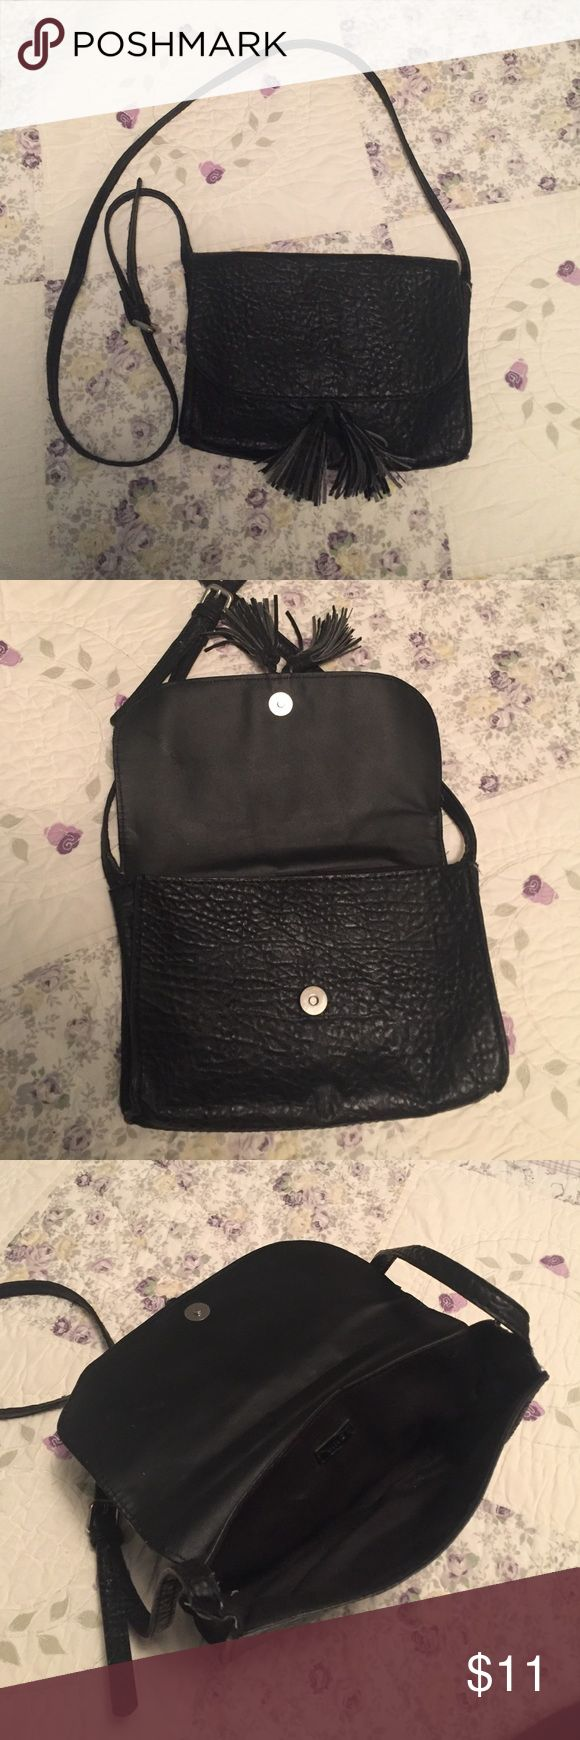 Black textured fake leather purse This purse is lightly used with a magnetic clasp and adjustable strap. It has silver accents and a long strap so it can be worn across the body. Purchased from a Mango store in Milan, Italy. Mango Bags Crossbody Bags